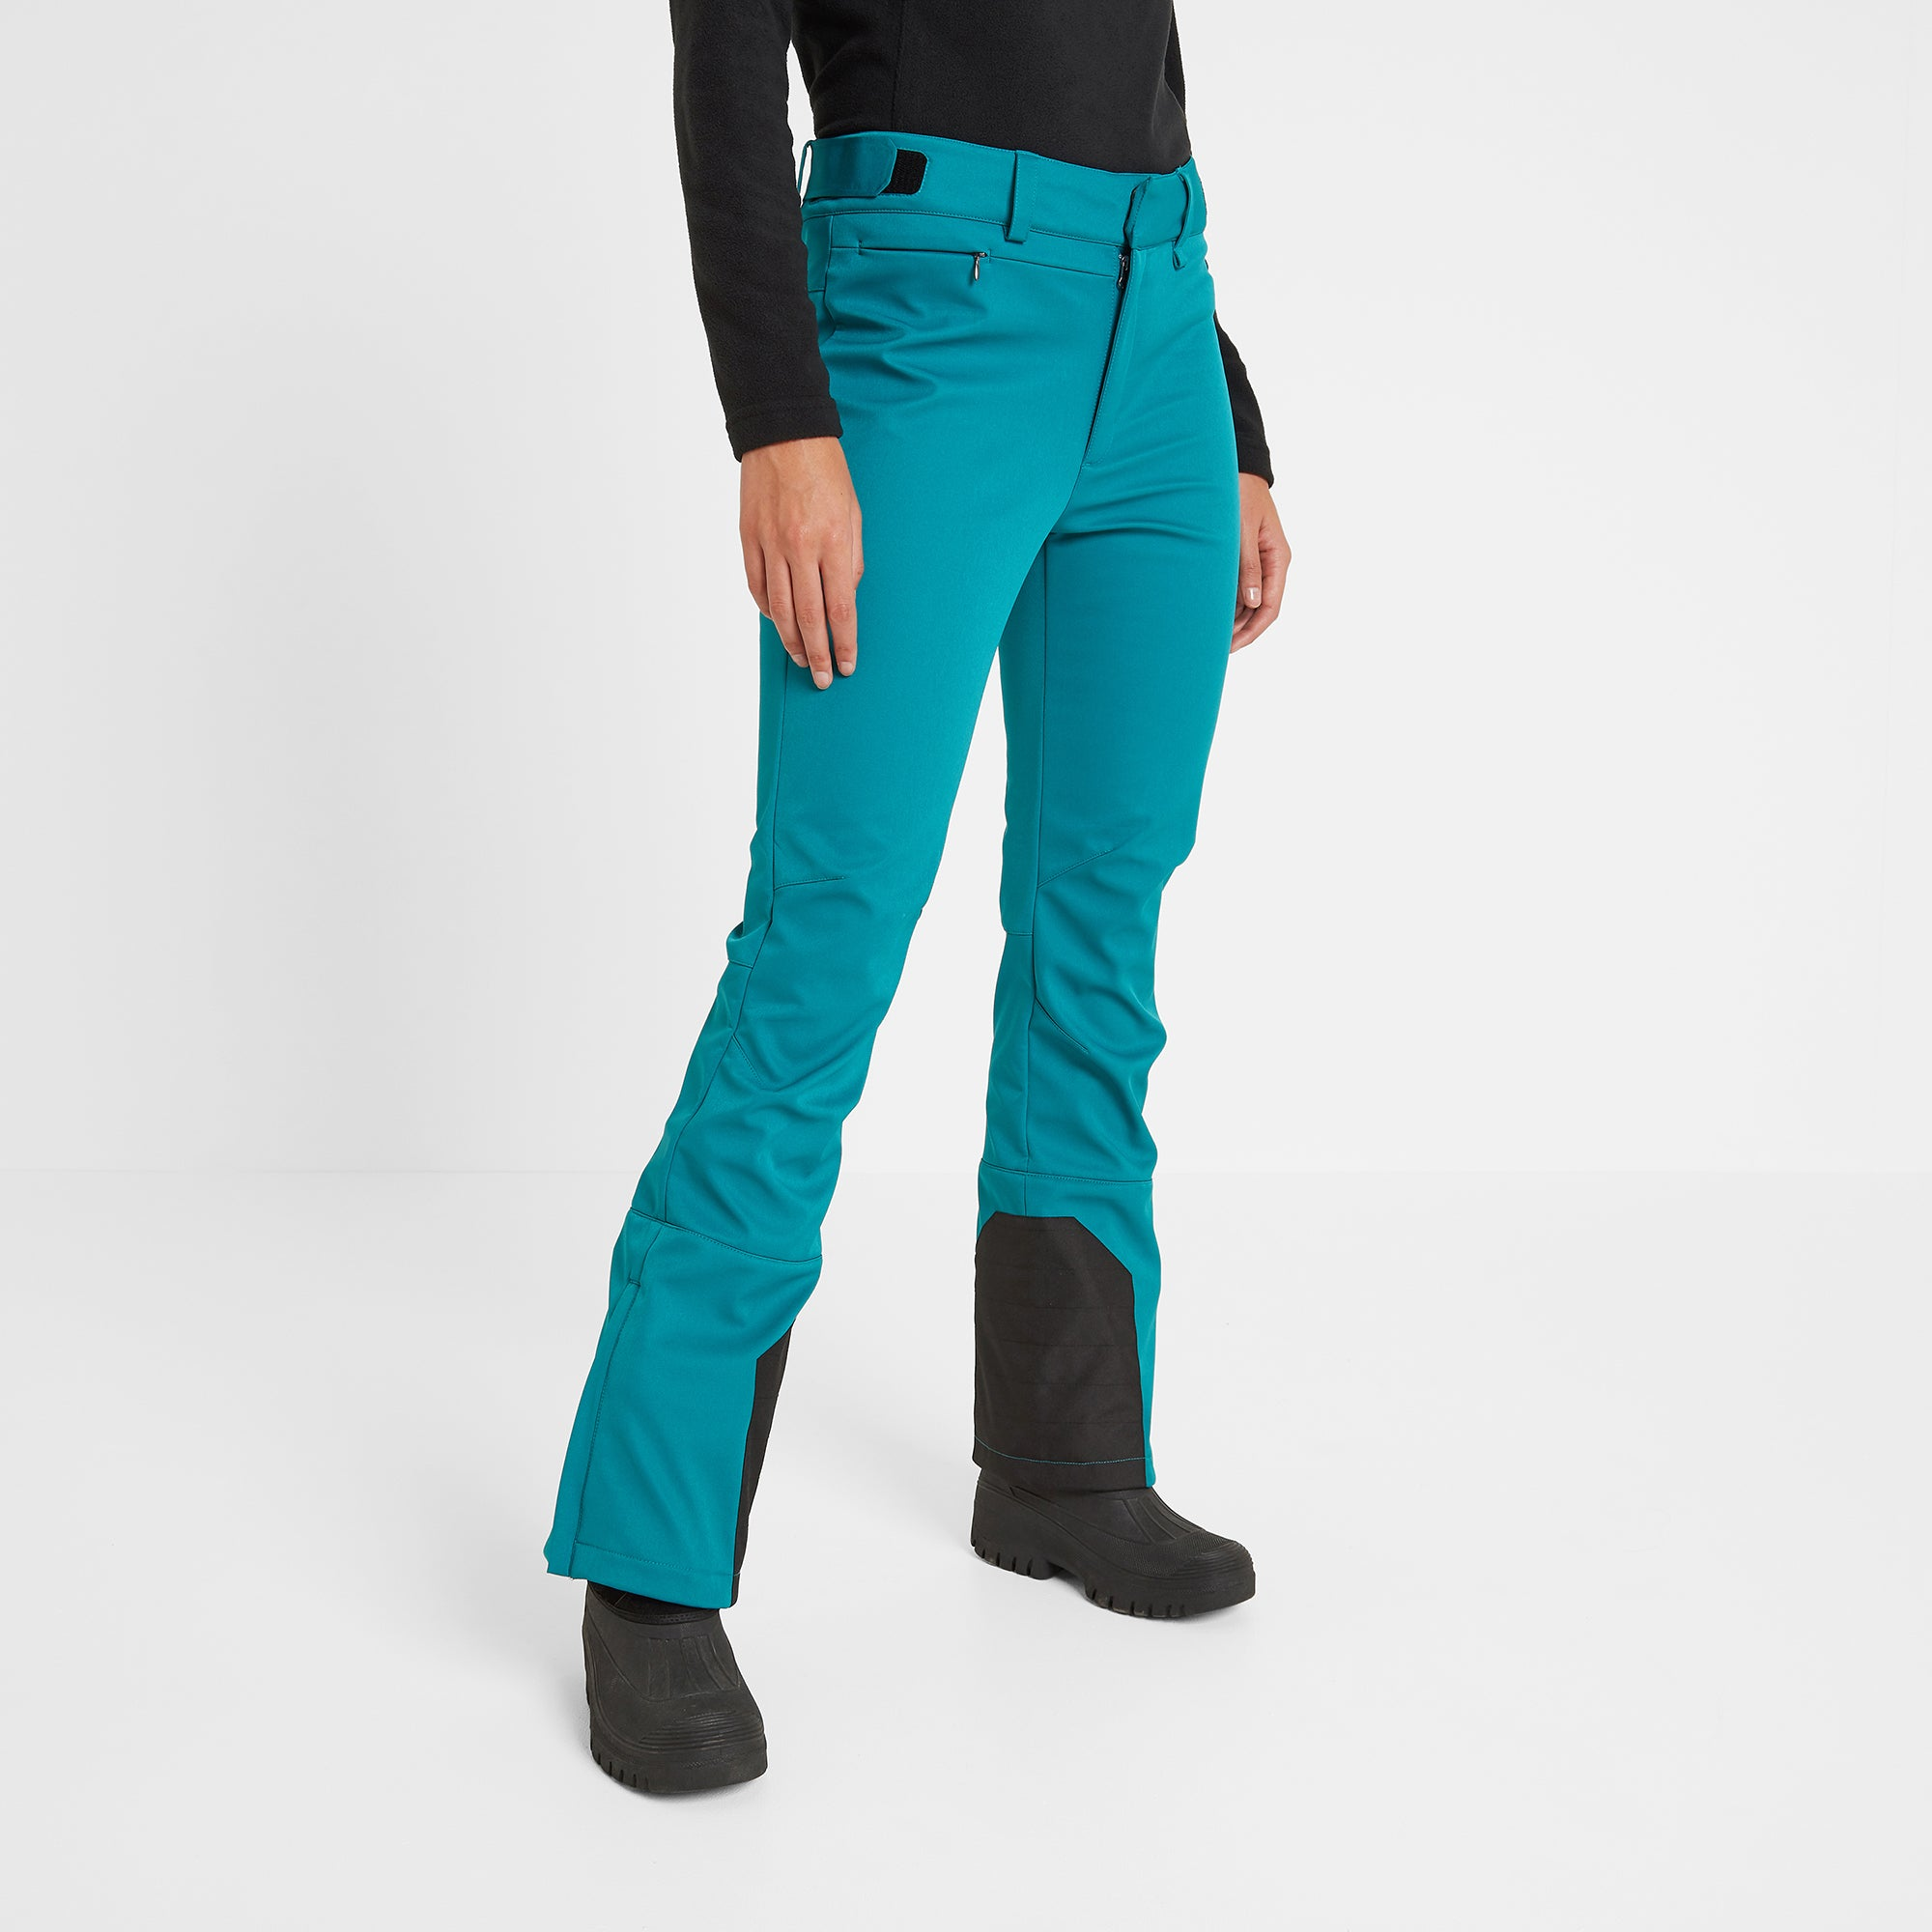 Aubree Womens Fitted Softshell Ski Pants Regular - Topaz